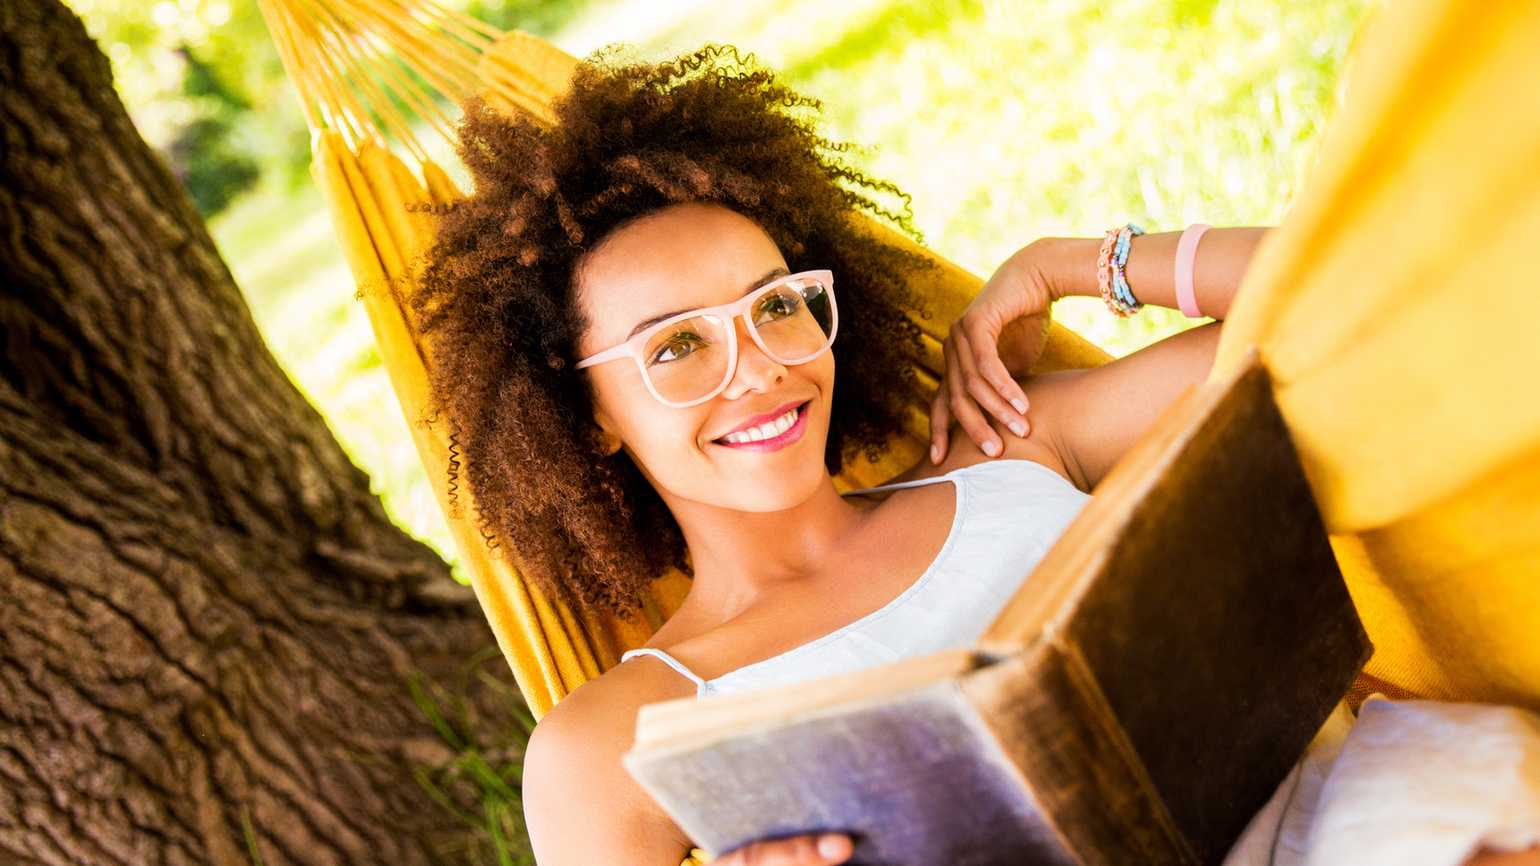 Woman reading book in yellow hammock during summer (Getty Images)